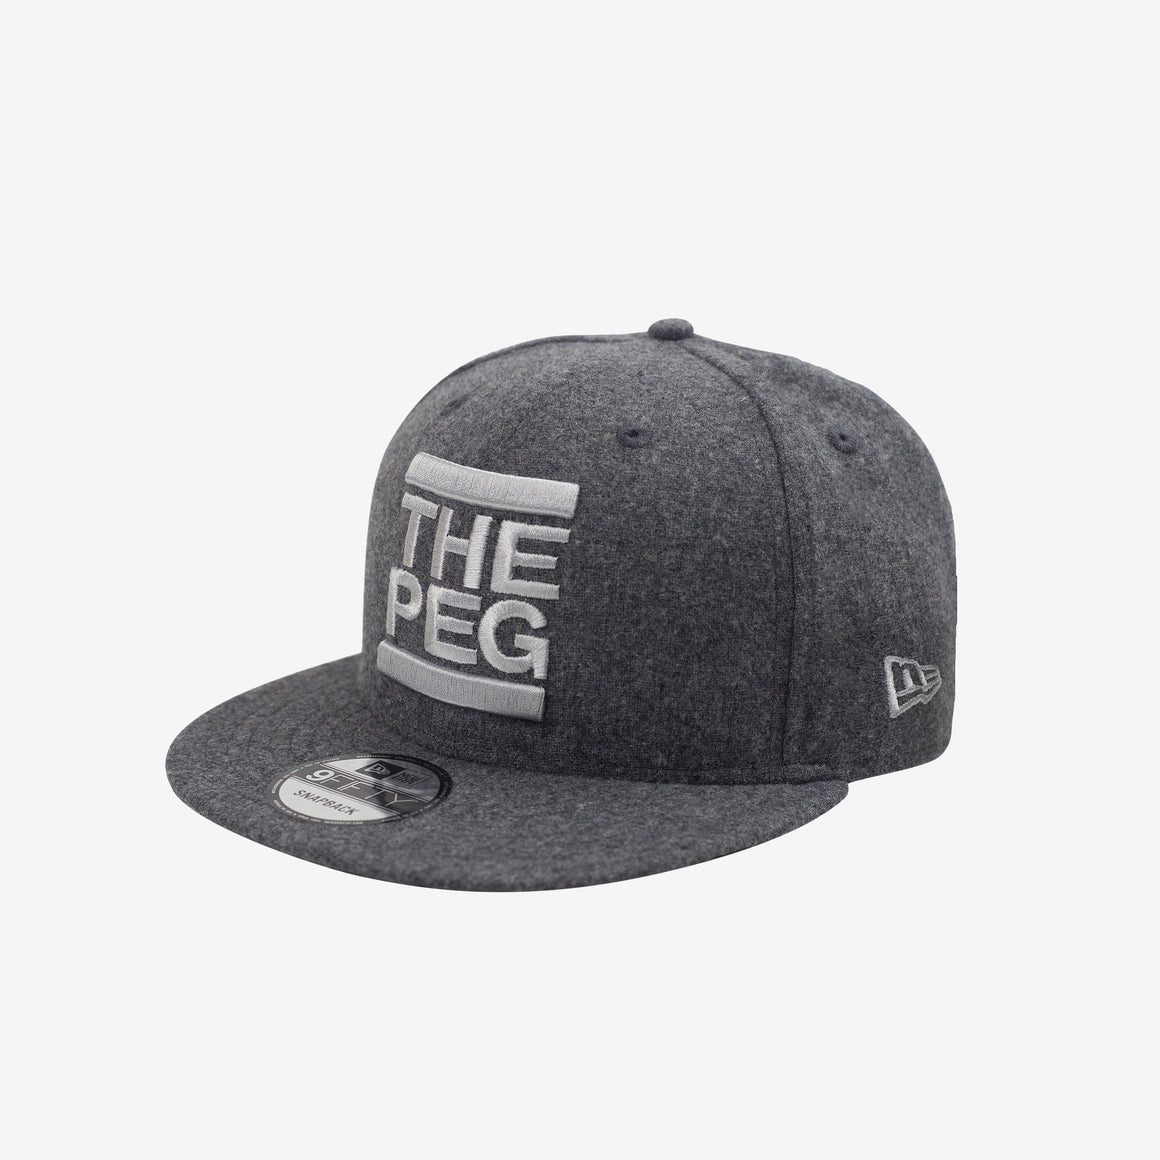 New Era 9FIFTY Classic Snapback (Melton Grey)